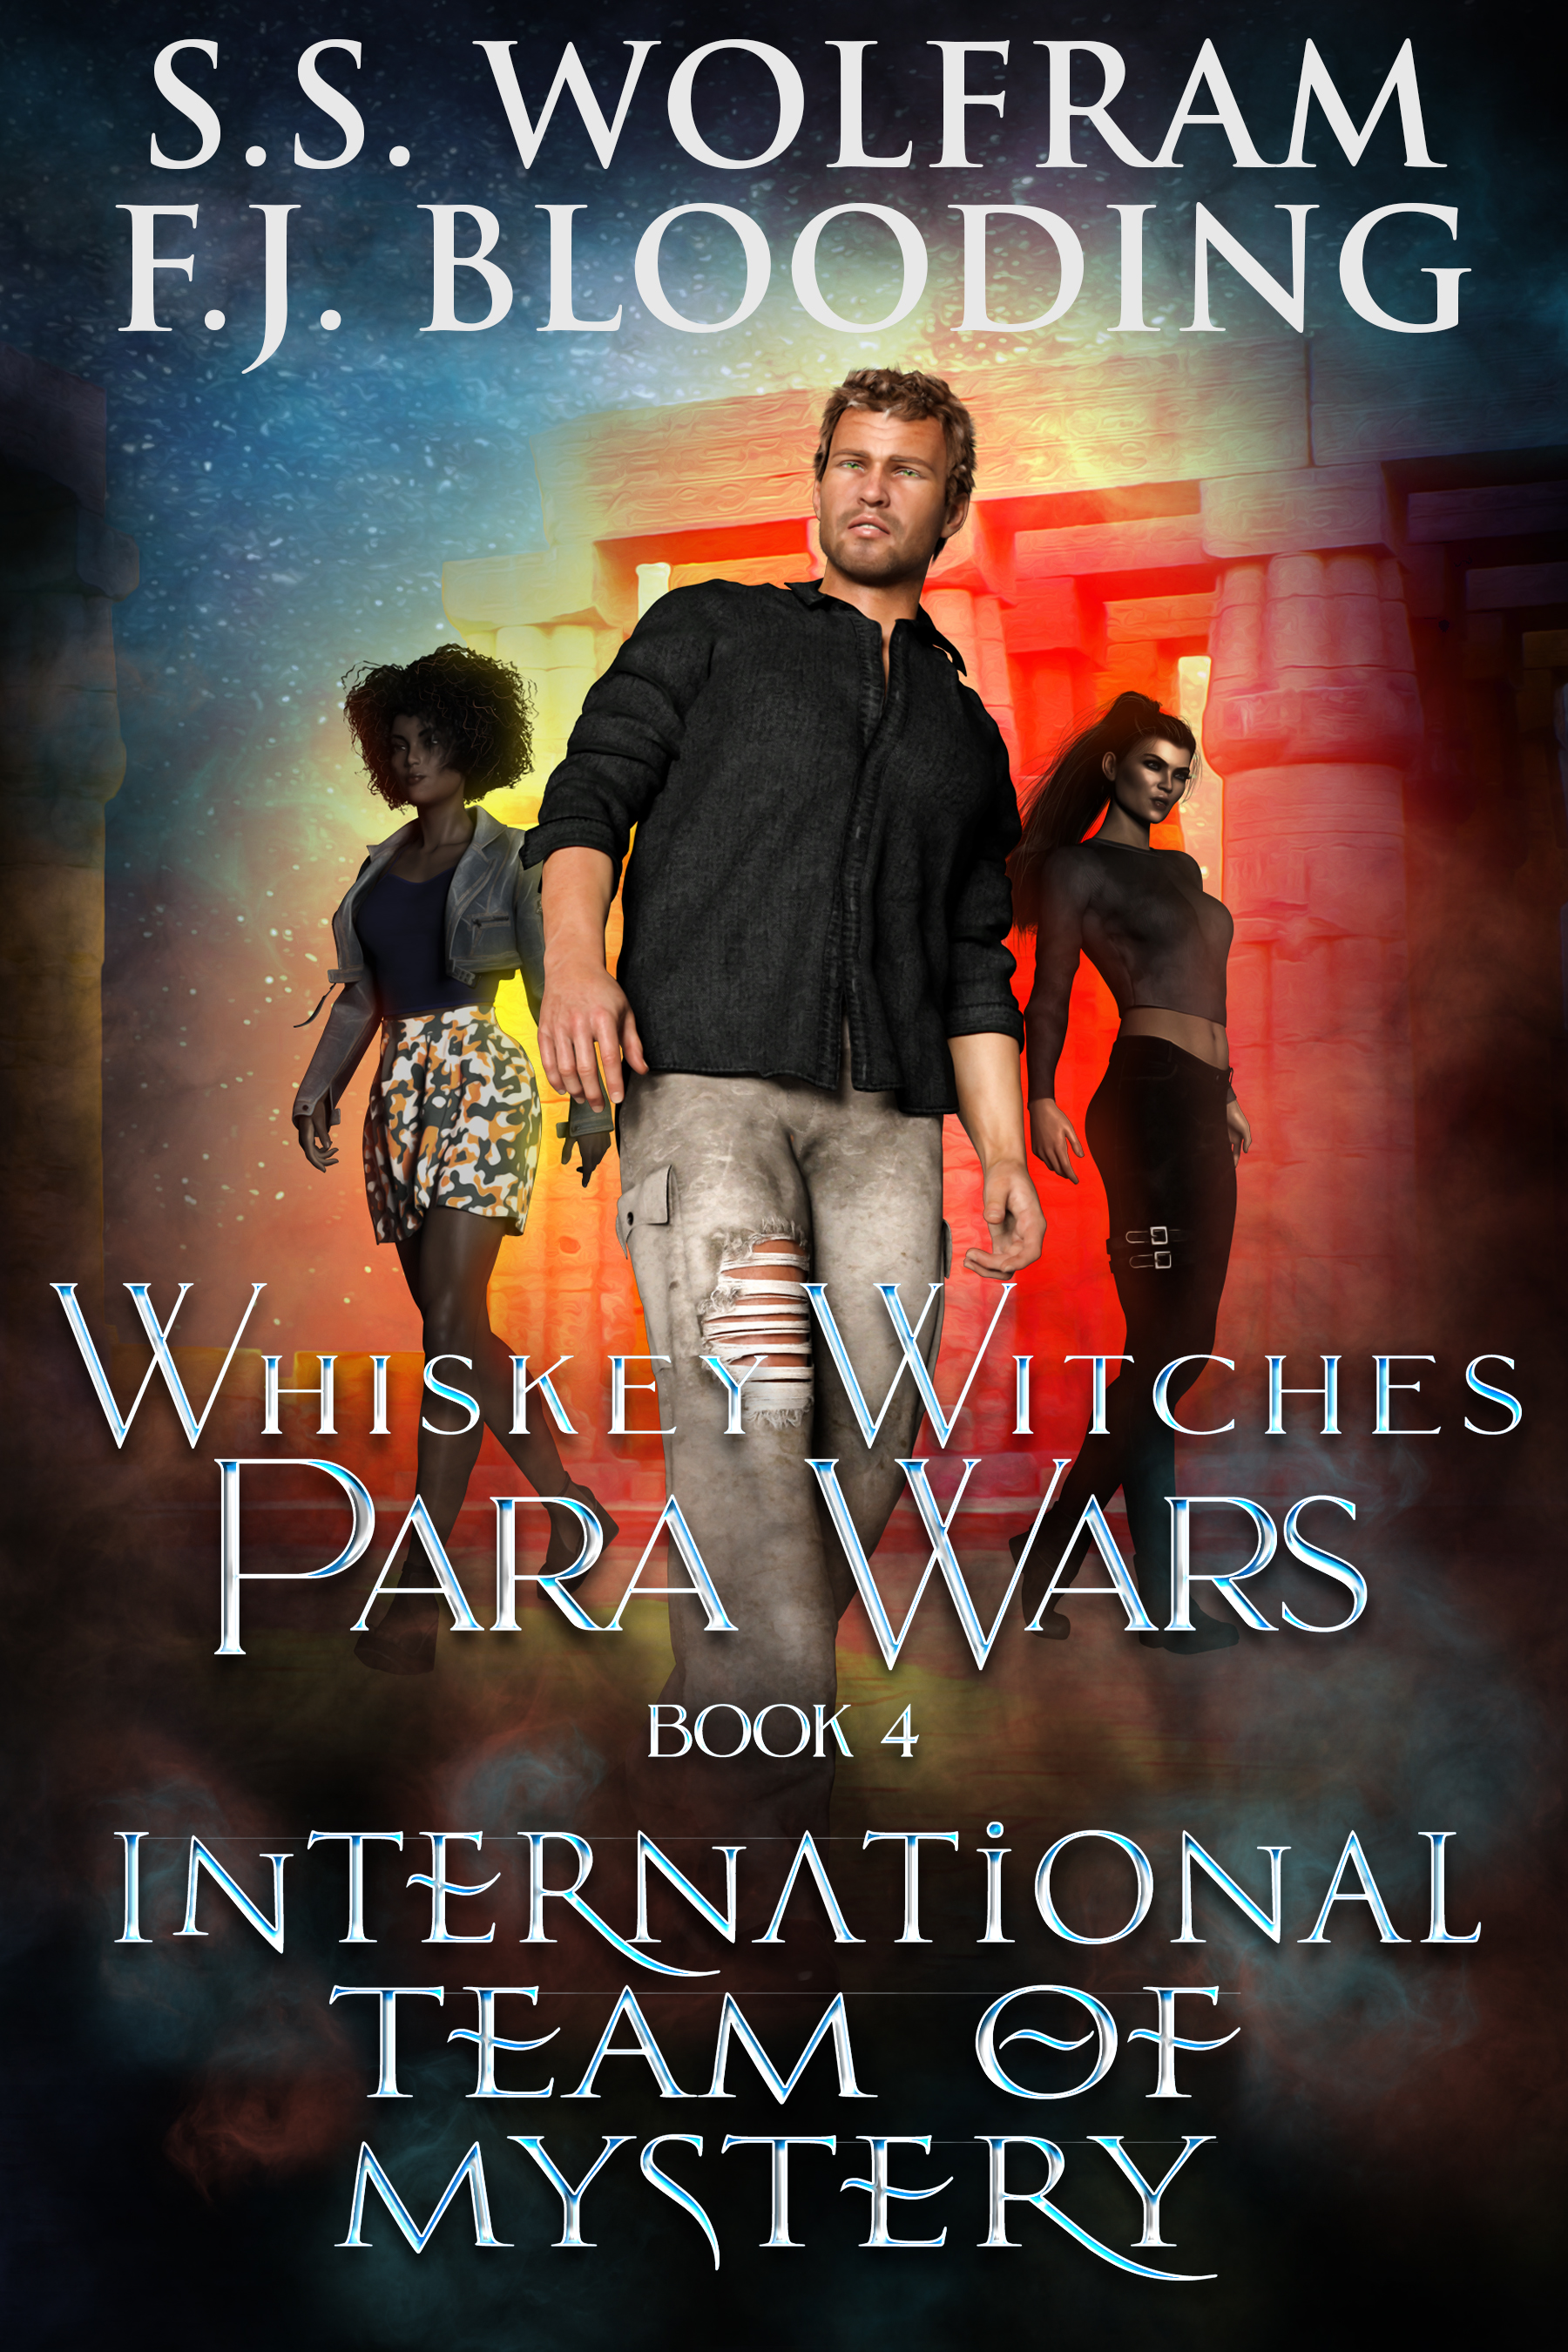 4pw International Team of Mystery ebook.